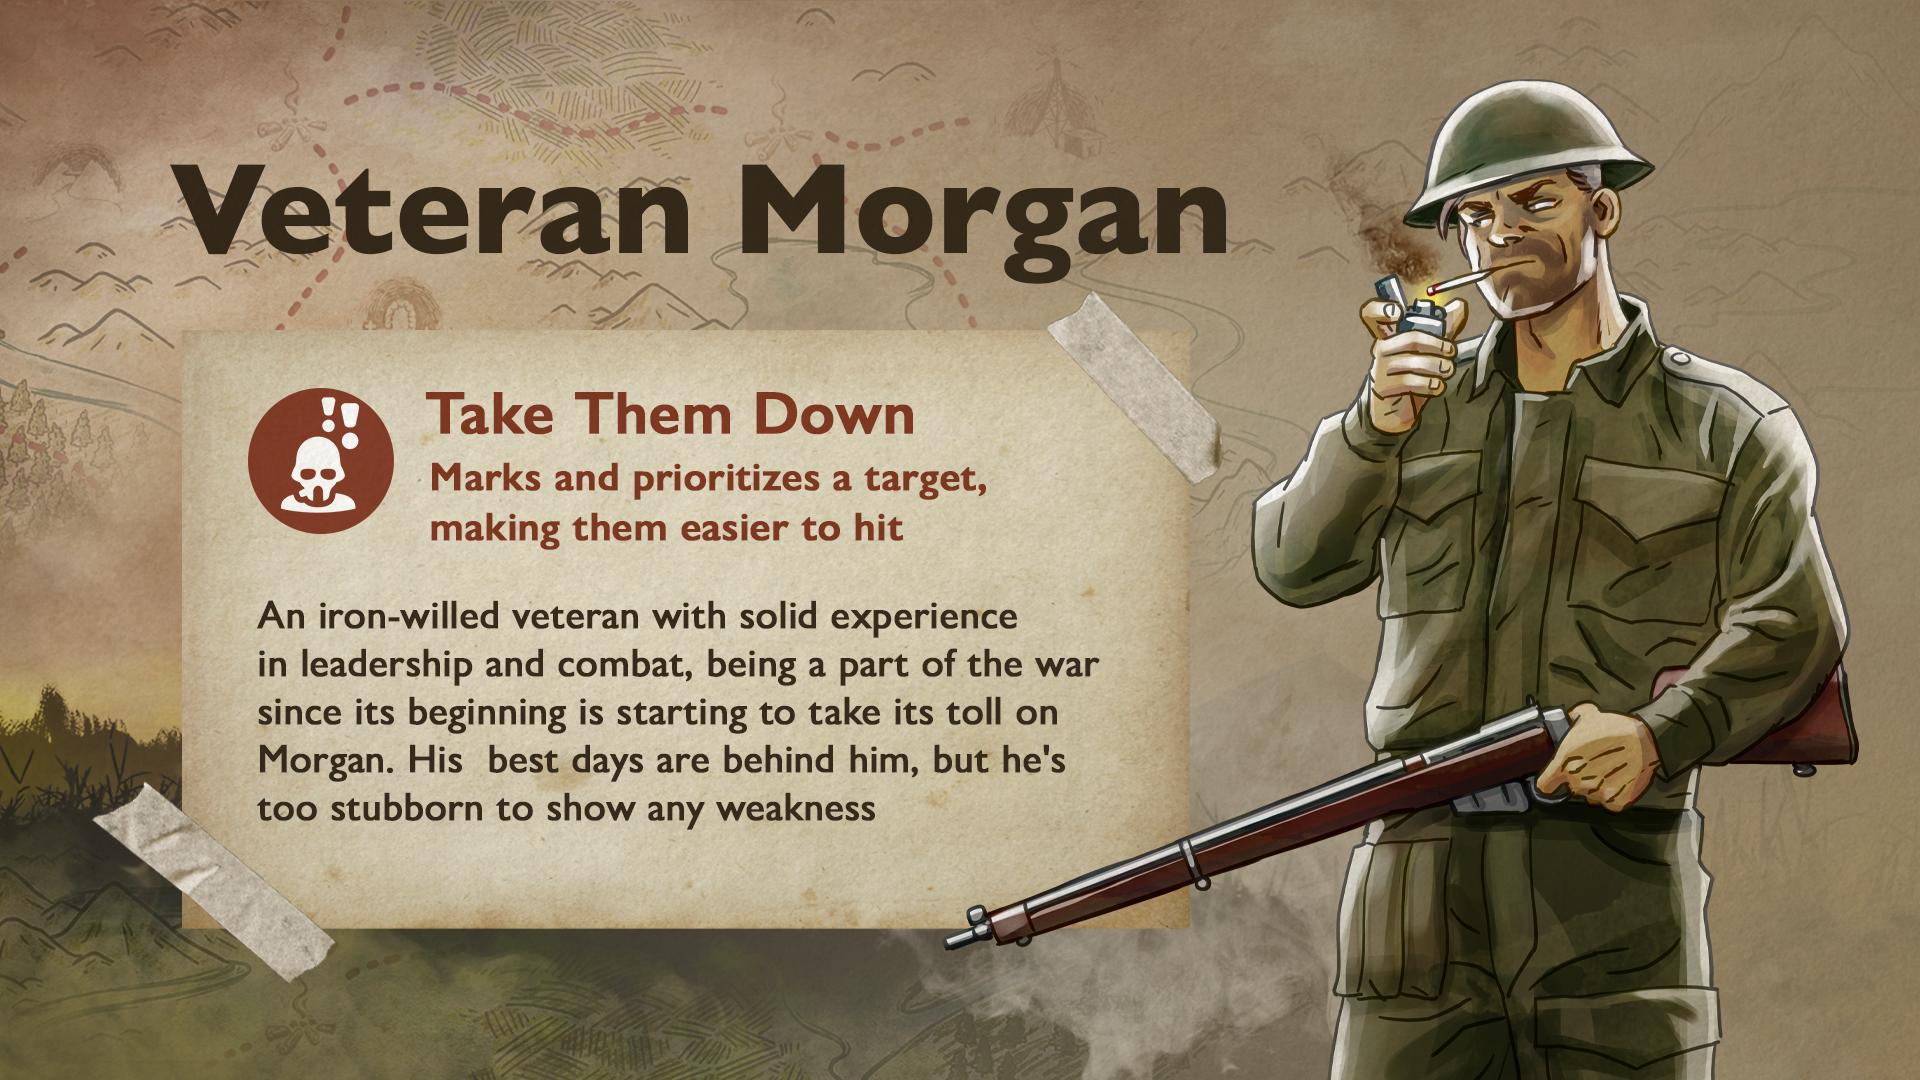 Profile: Morgan